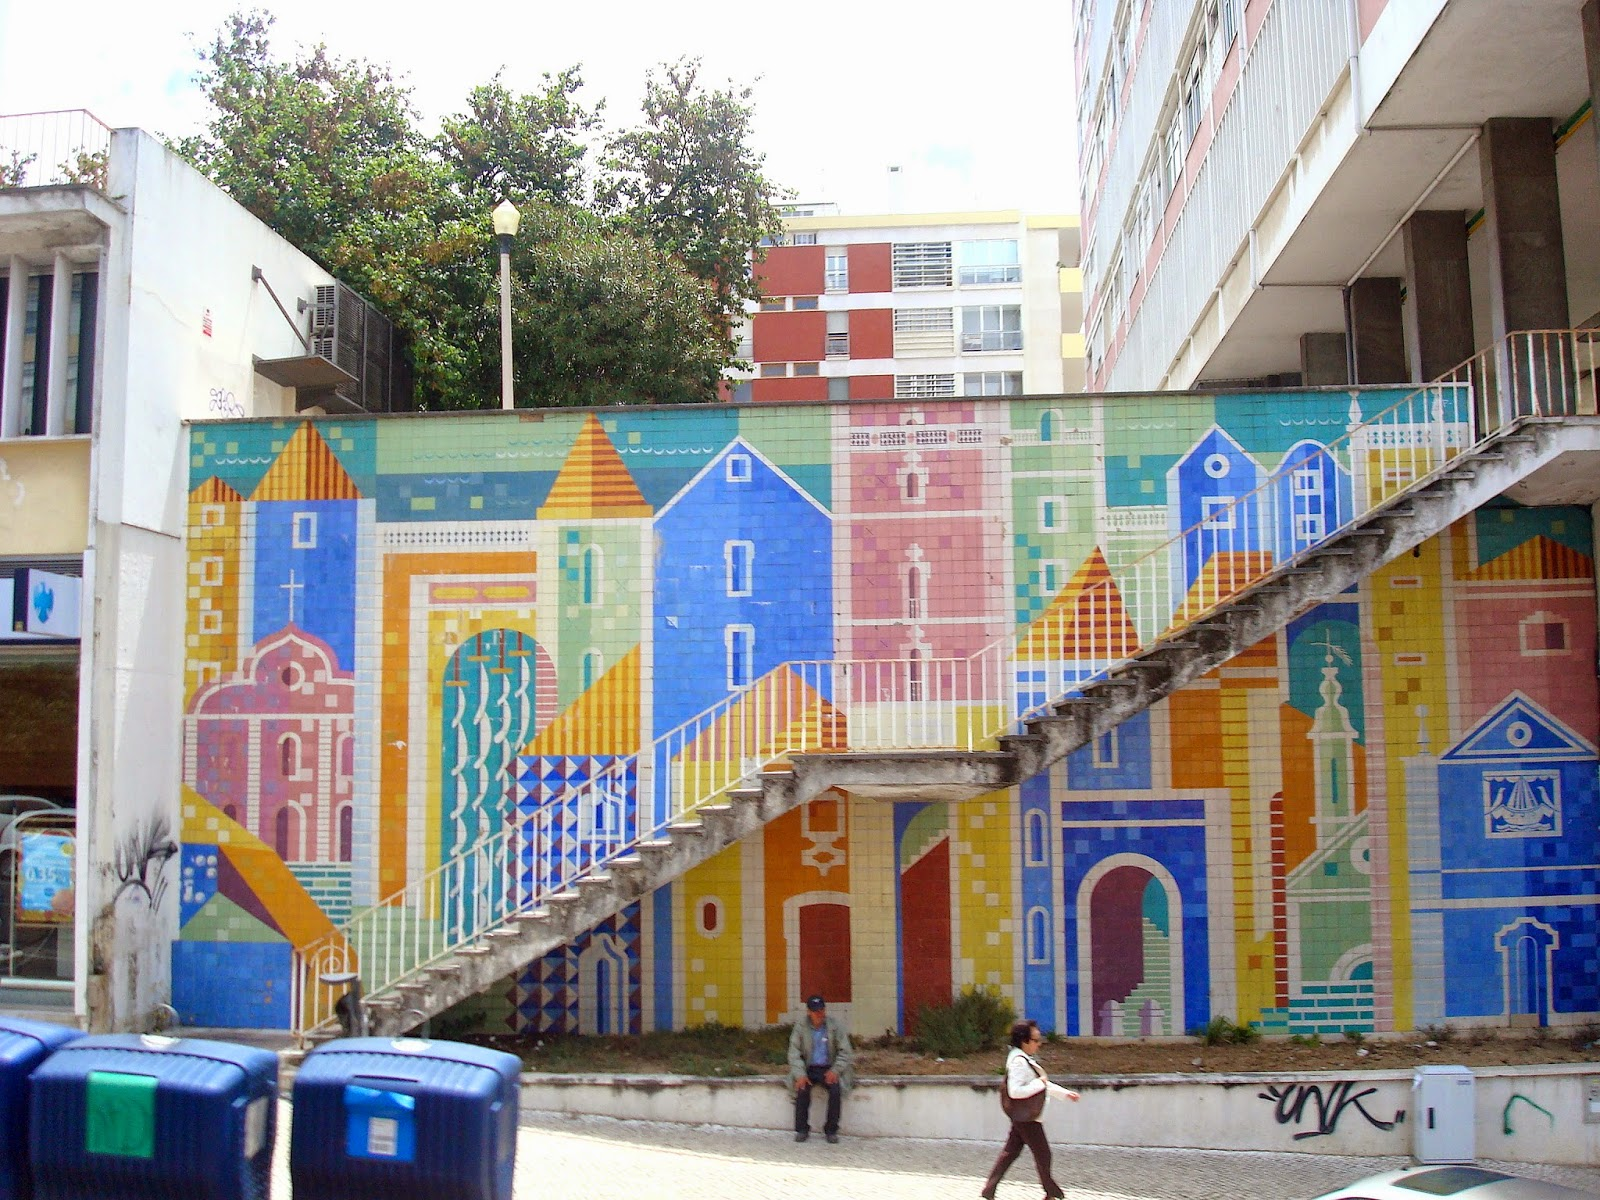 Azulejos, or Mosaic Tile Artwork in Lisbon, Portugal